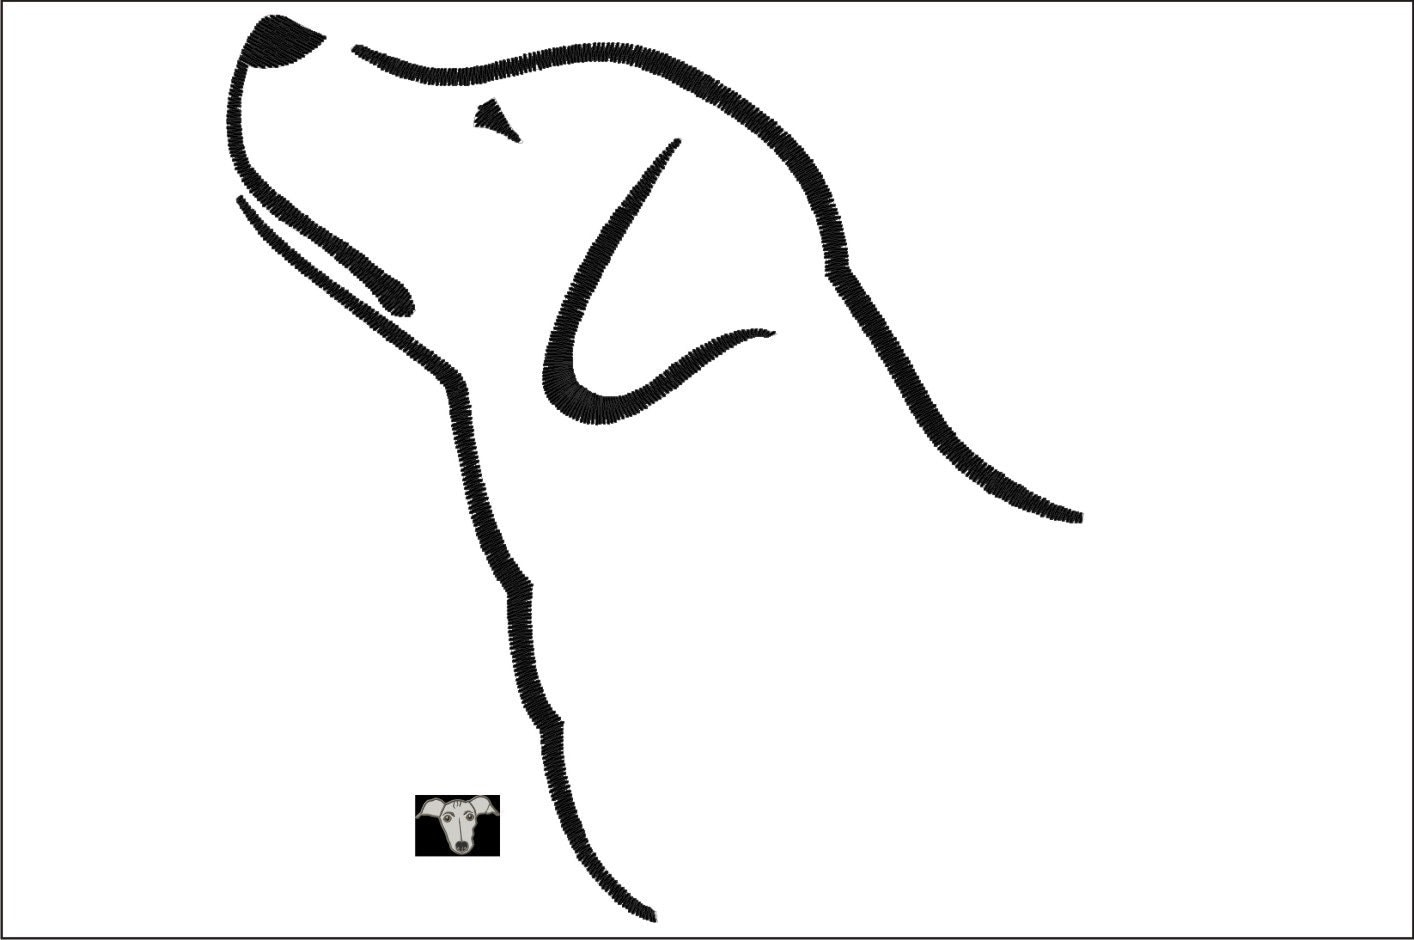 Labrador Dog Outline Designs in 5 sizes from 4ItchyEars on ...